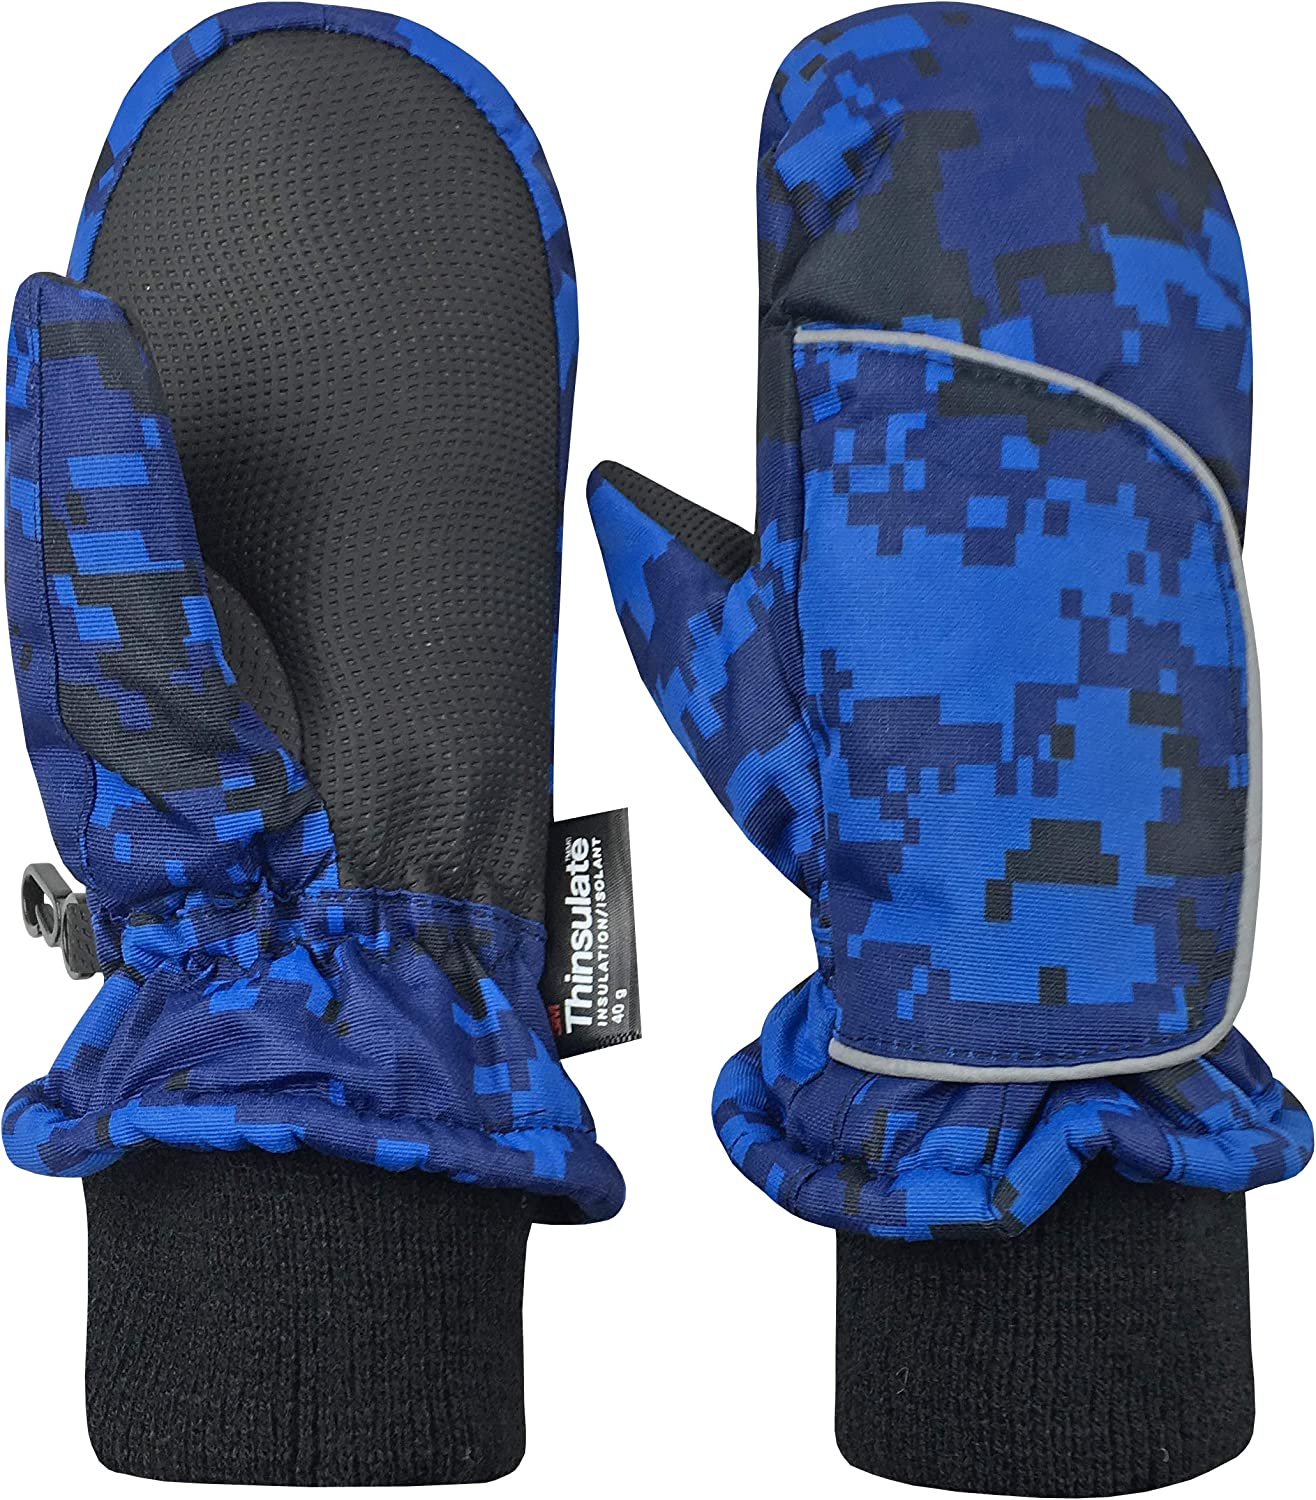 Blue Digital Camo, 4-5 Years NIce Caps Kids and Baby Easy-On Wrap Waterproof Thinsulate Winter Snow Mitten